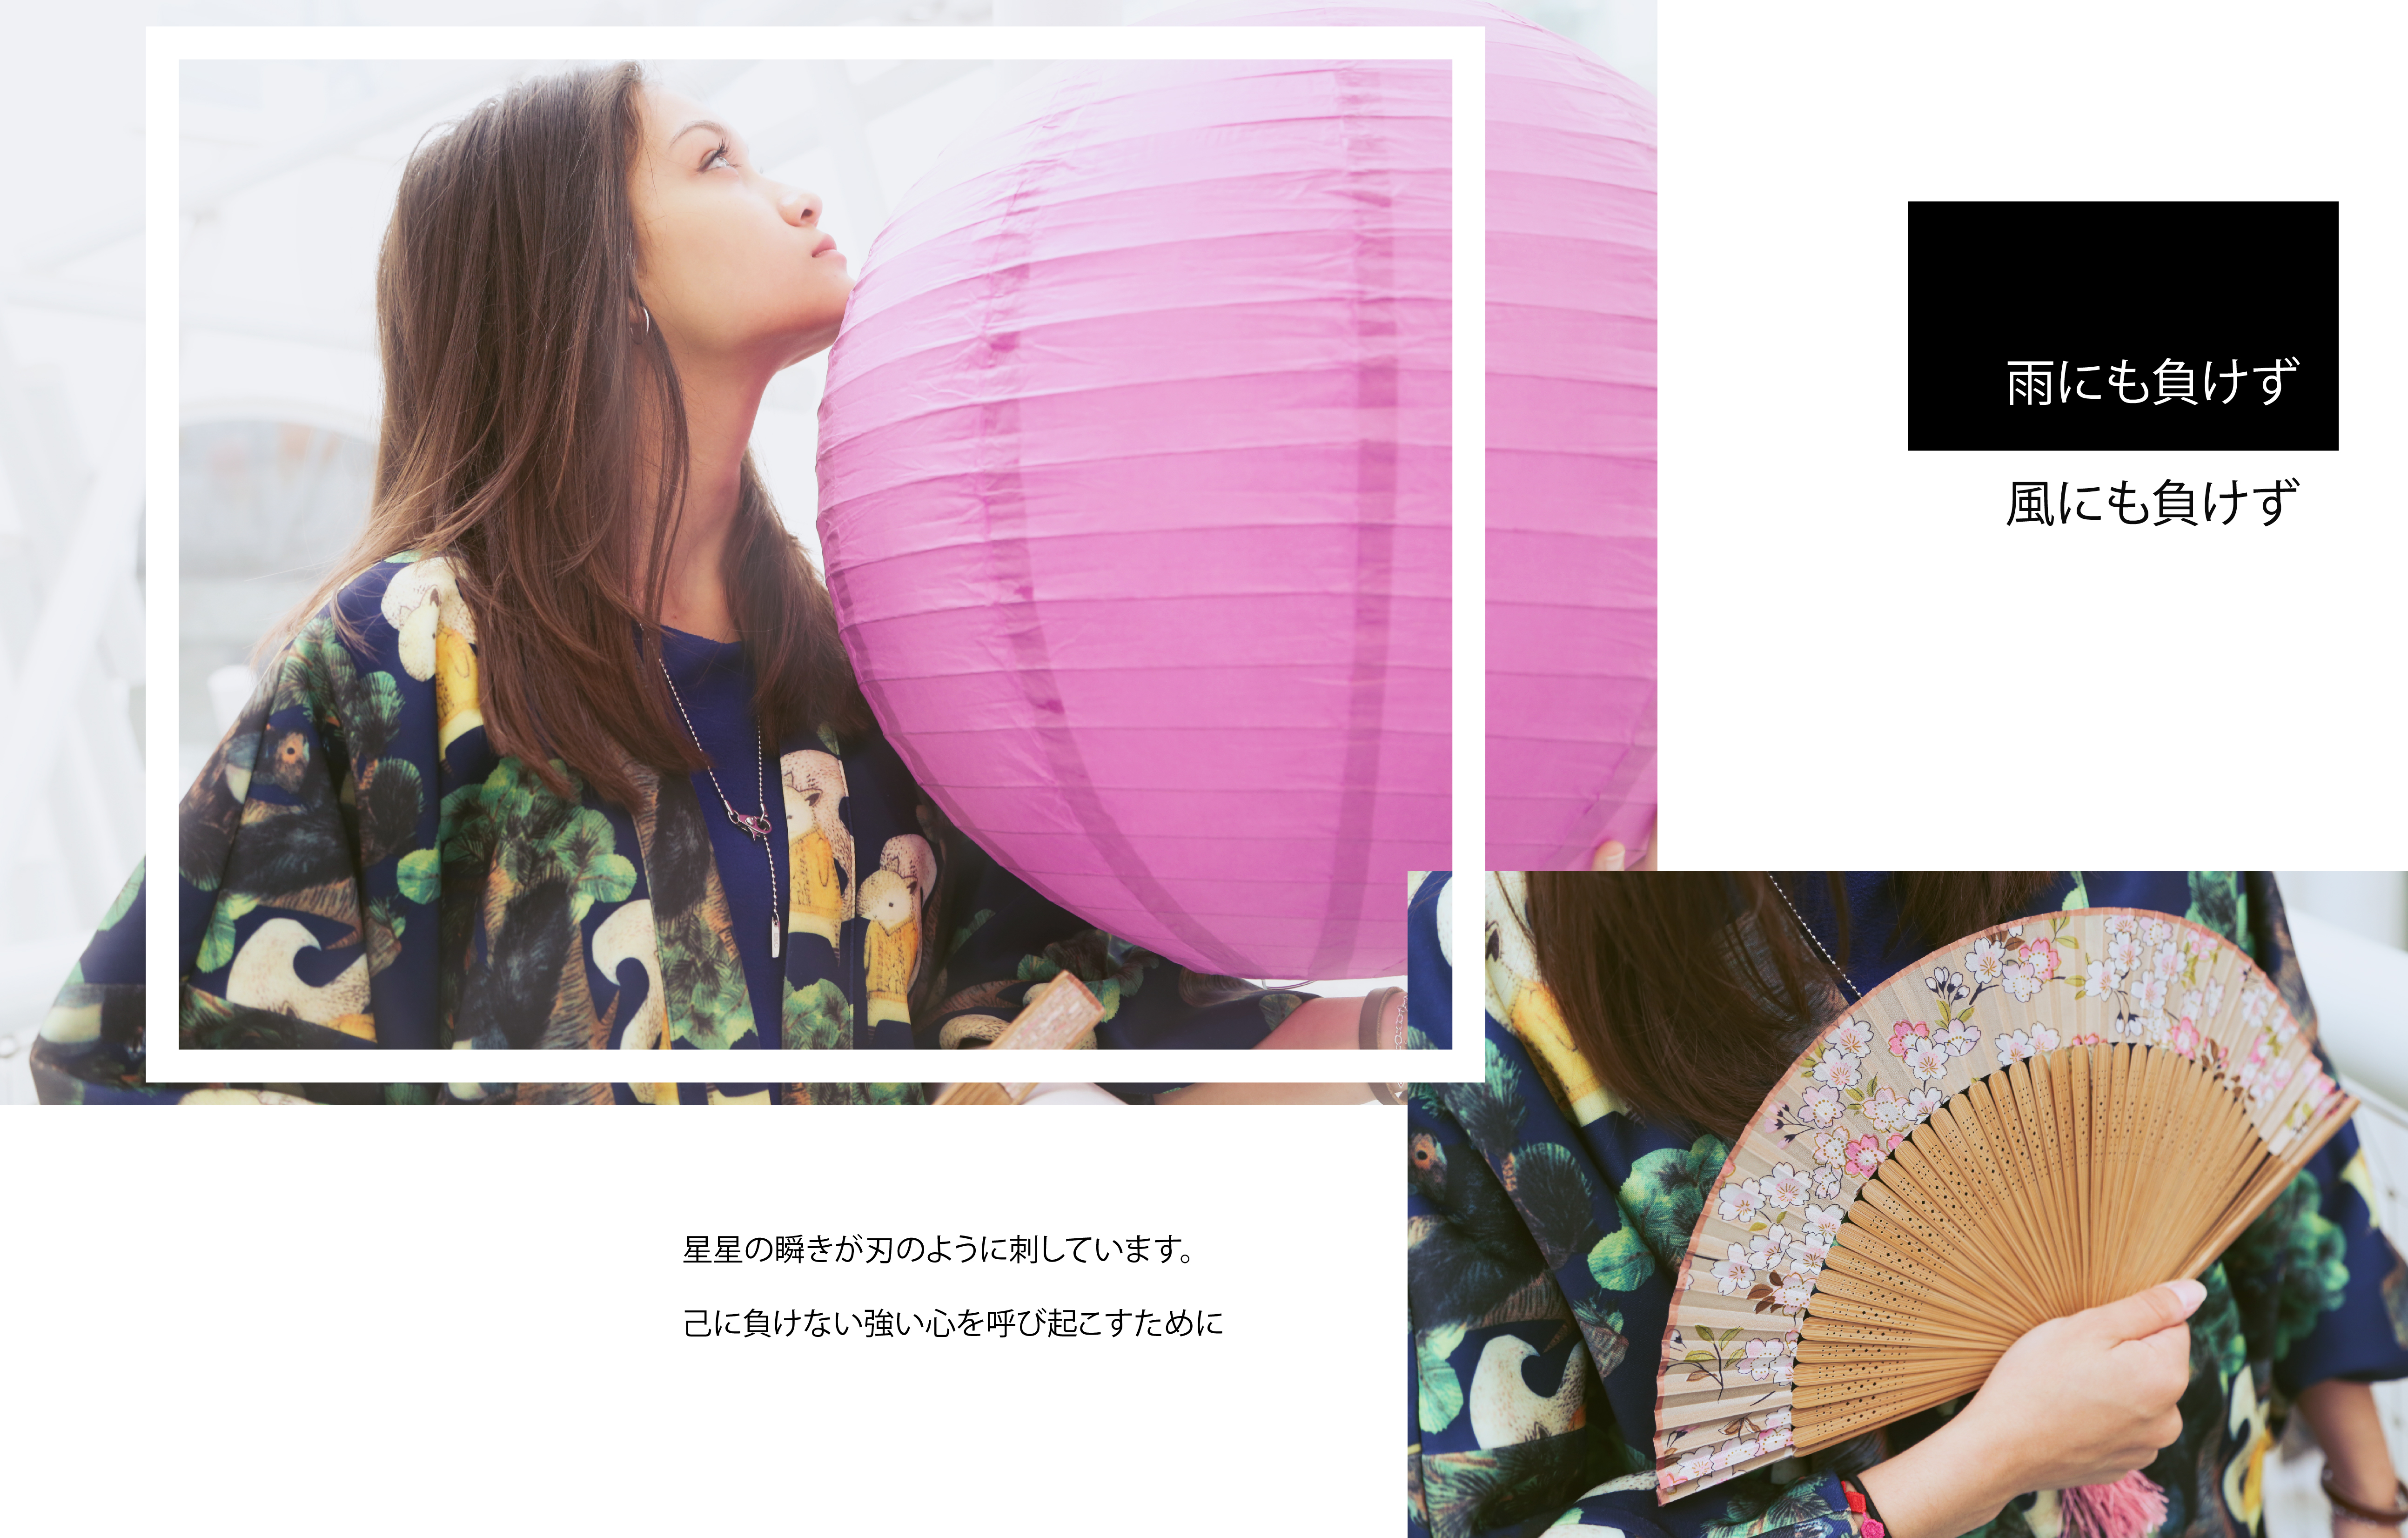 Japanese Brand Design and Photography